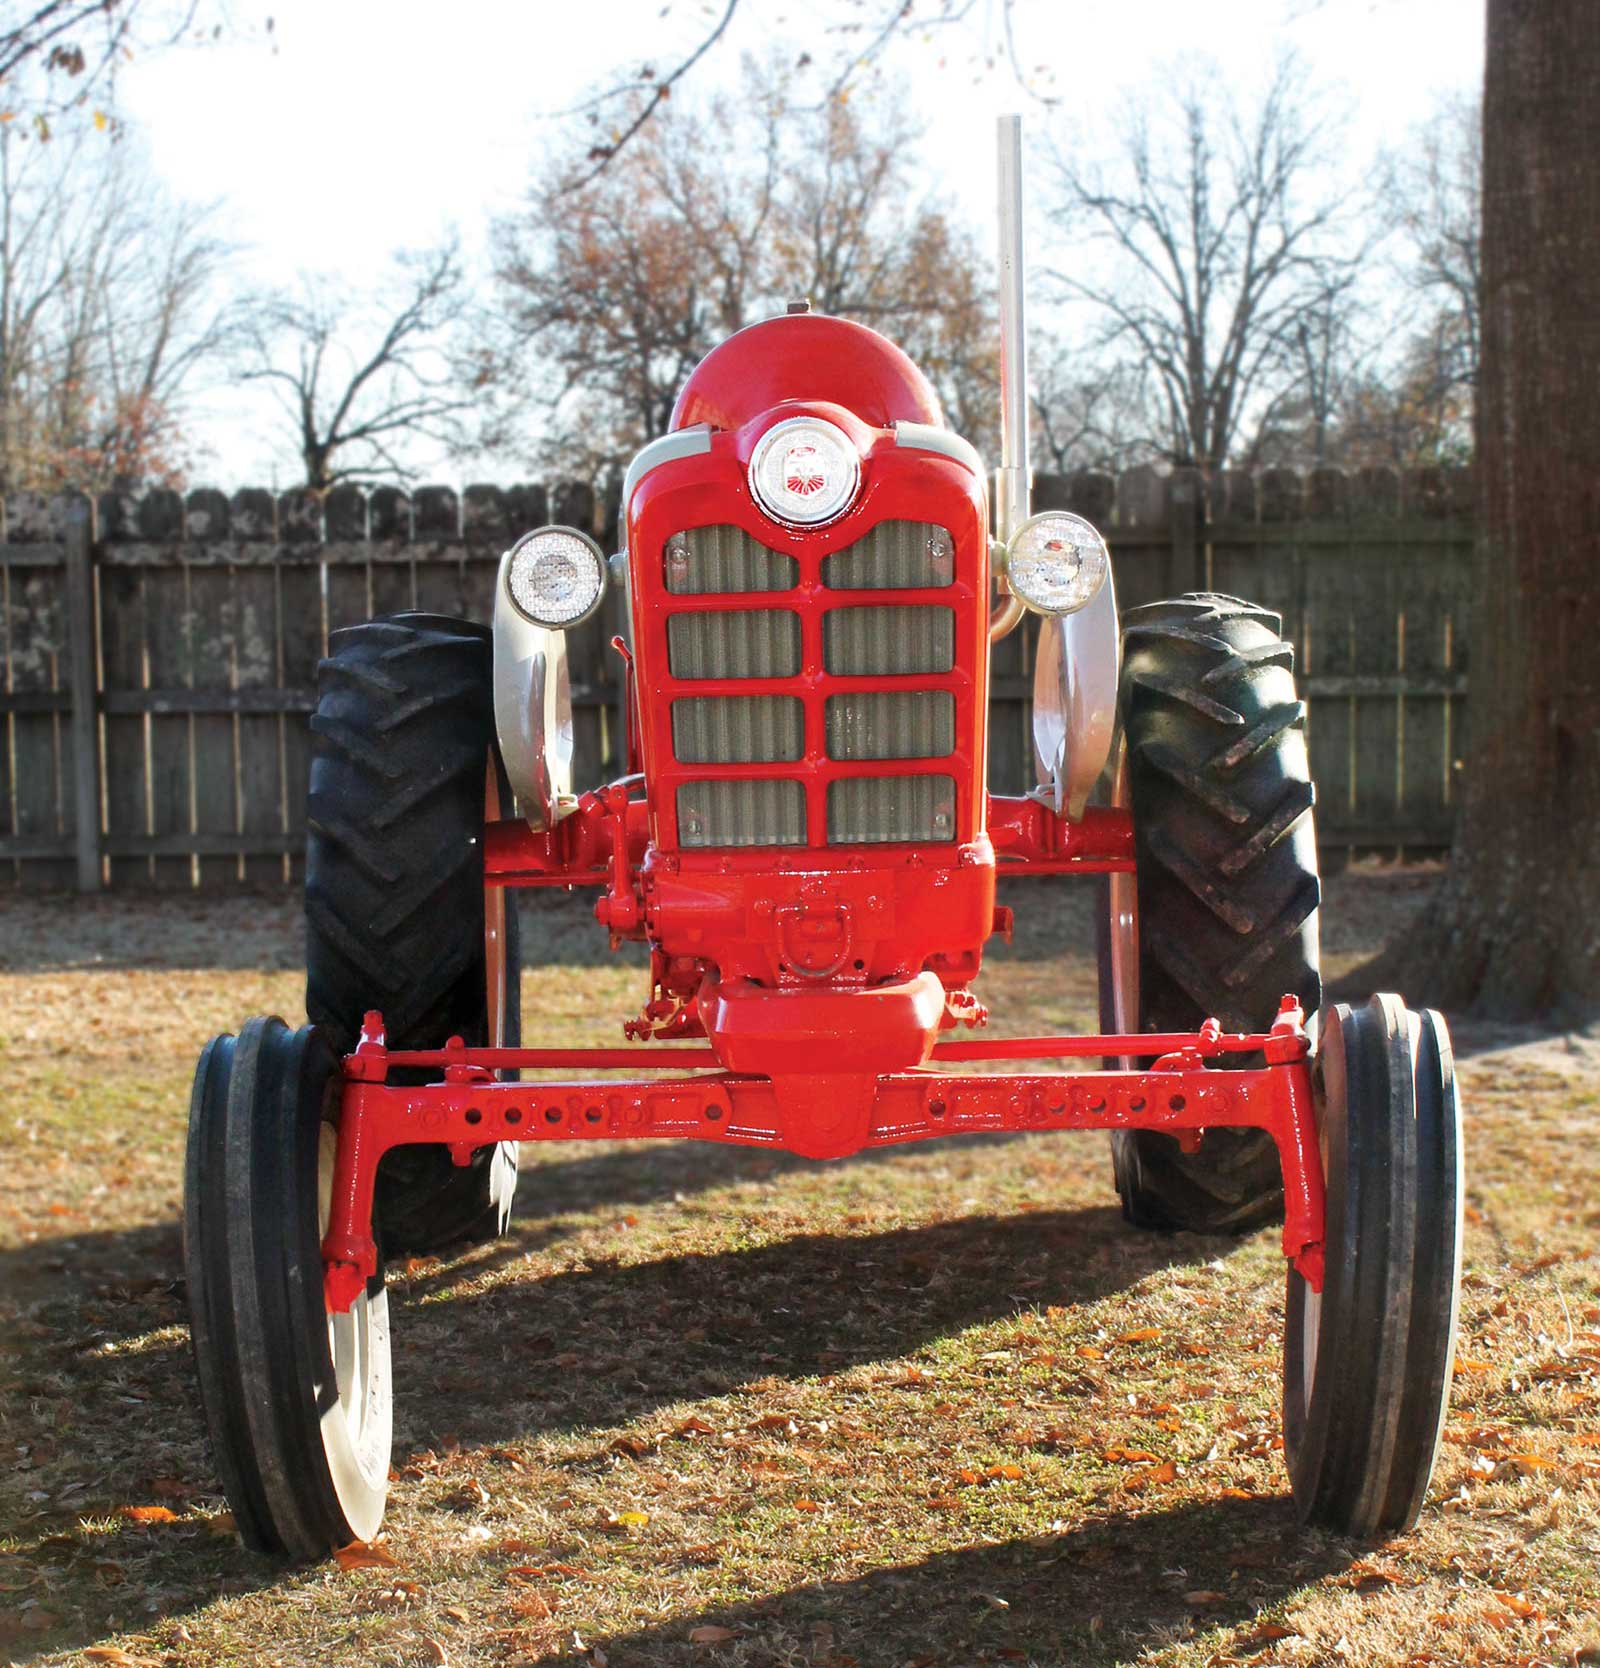 9n Ford Tractor For Sale: The Magazine For The Ford Tractor Enthusiast